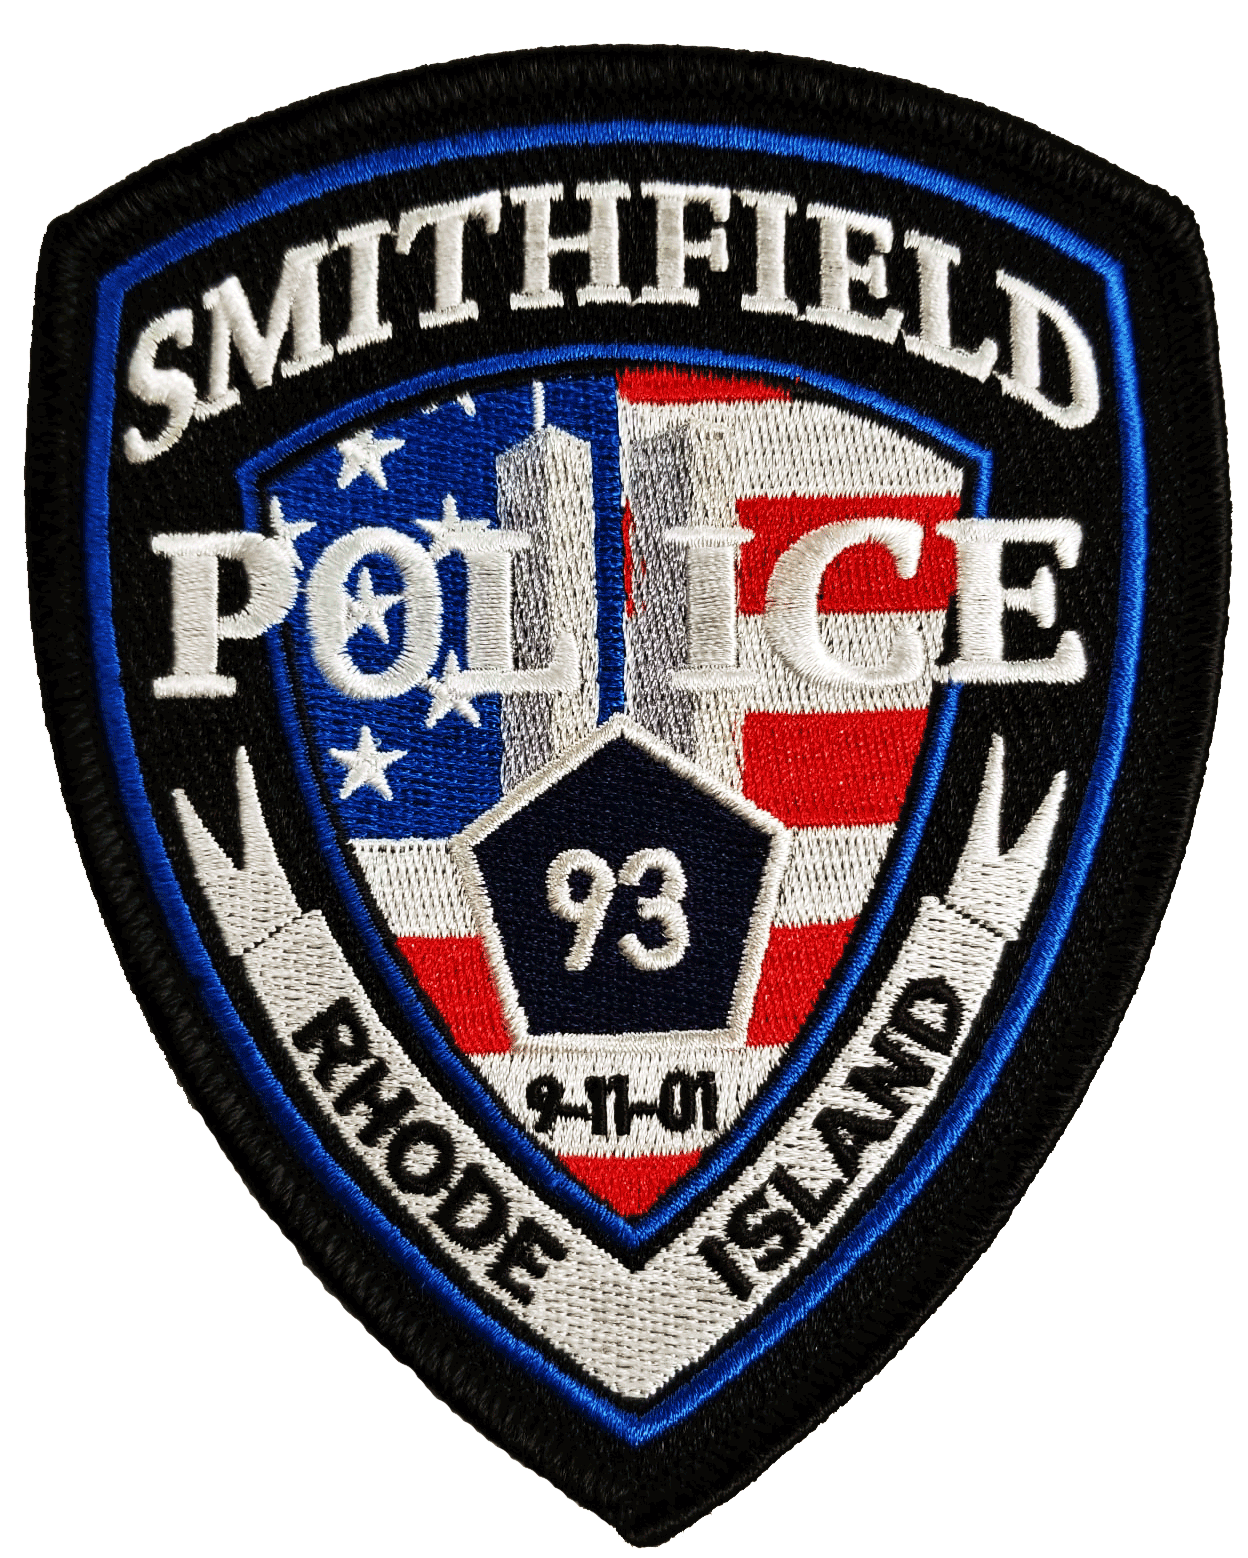 Smithfield Police 9/11 Tribute Patches Available